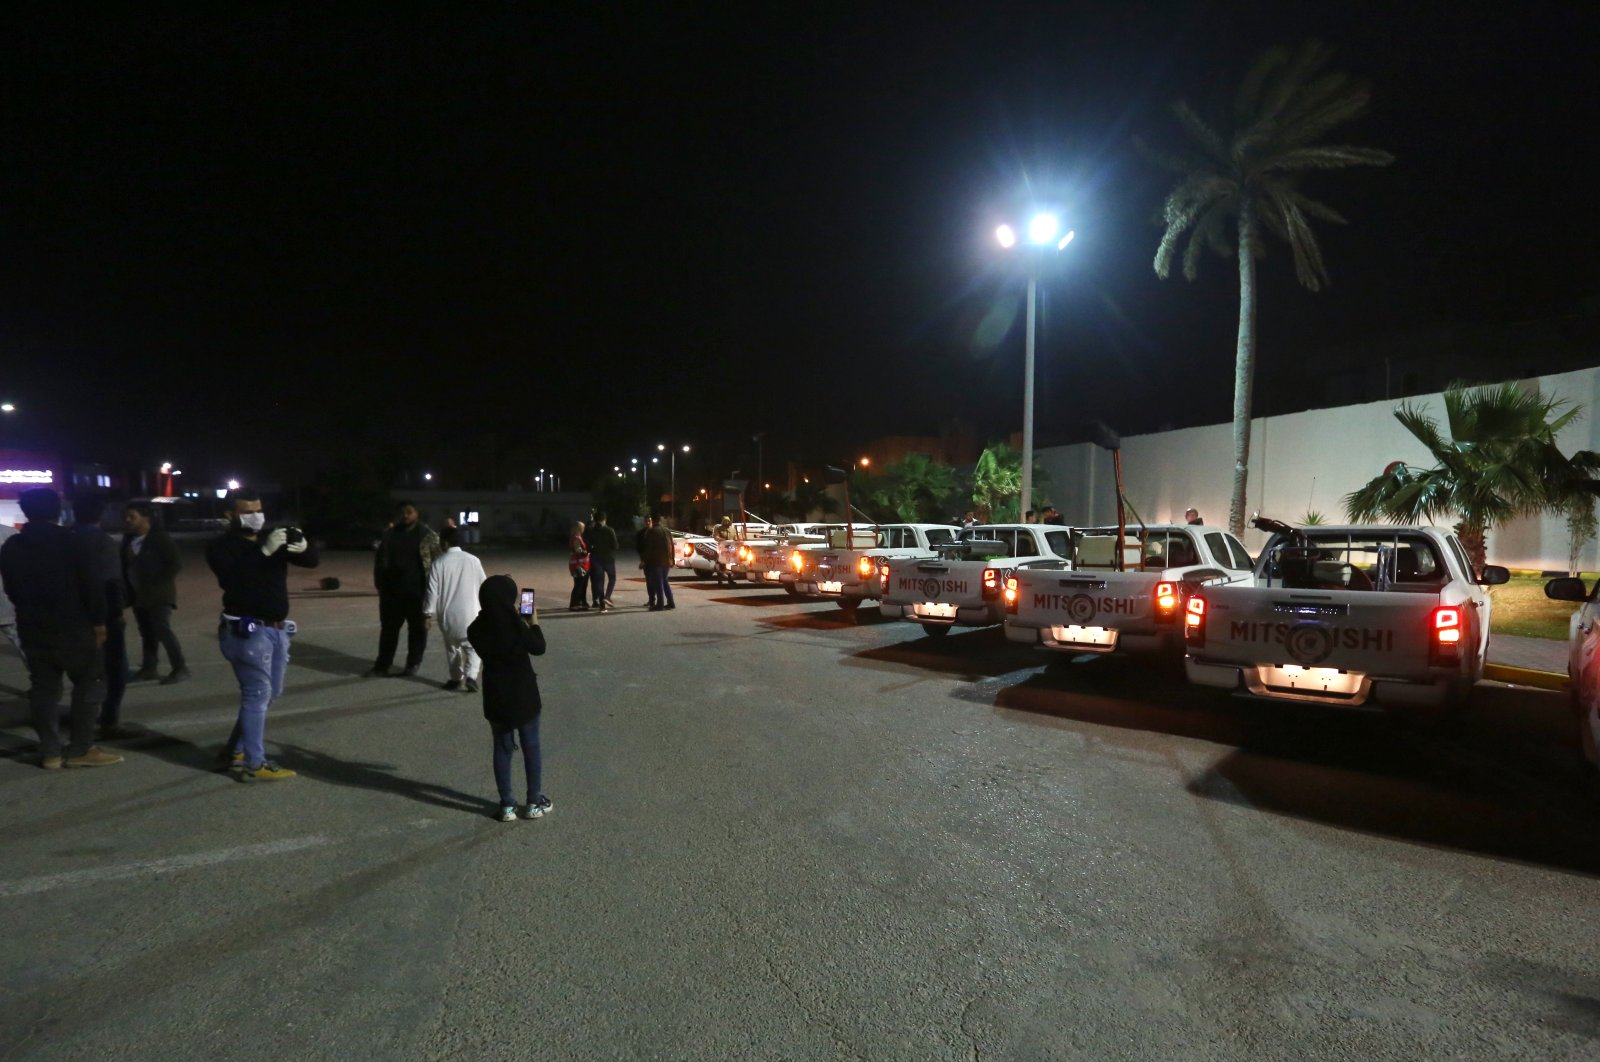 Libya's internationally recognized Government of National Accord in Tripoli has ordered a curfew from 6 p.m. to 6 a.m. to help prevent coronavirus infections, March 21, 2020 (AA Photo)